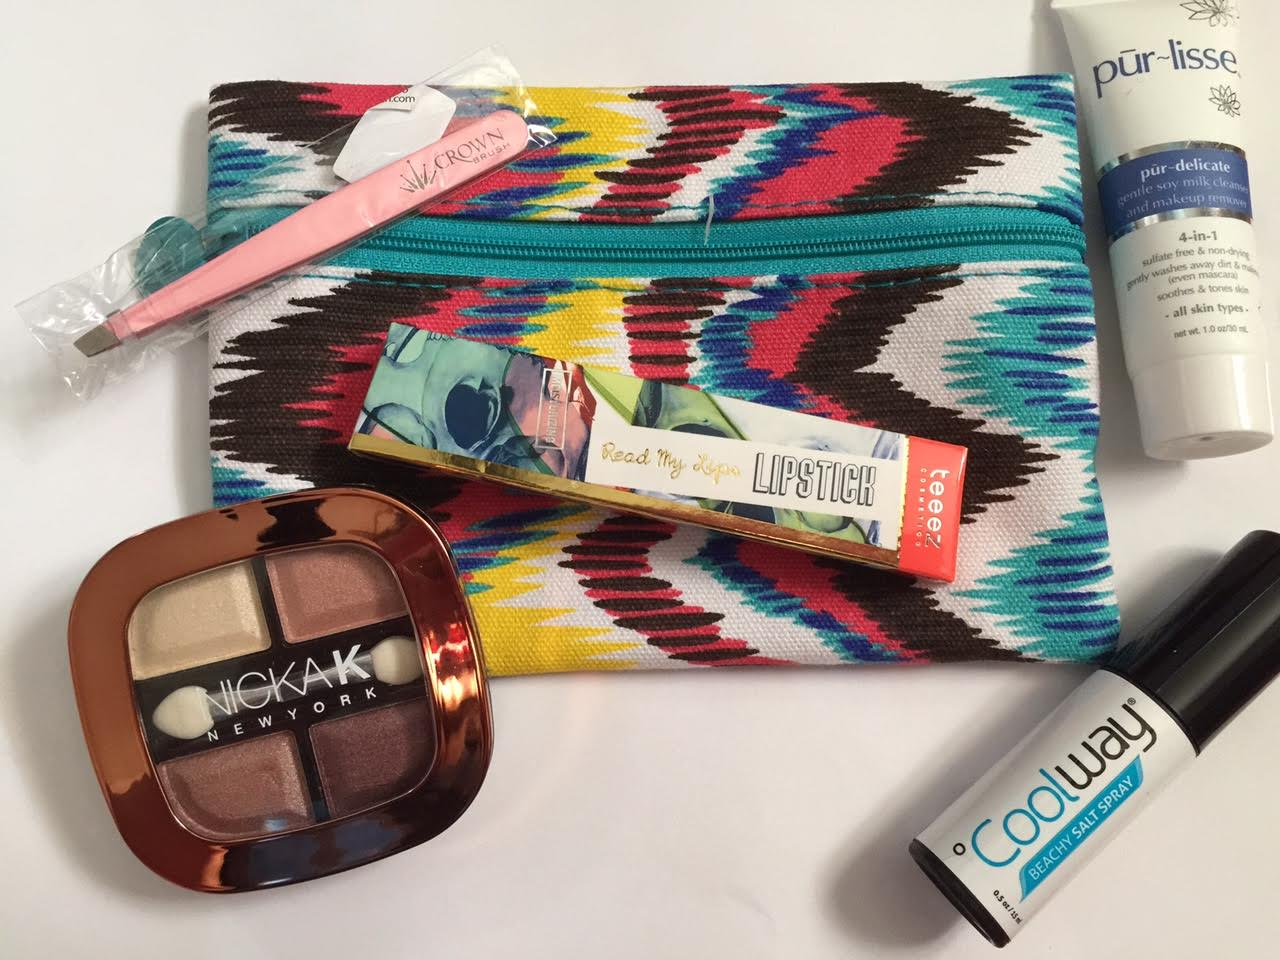 Ipsy Glam Bag Reveal July 2015 #beauty #ipsy #makeup #style